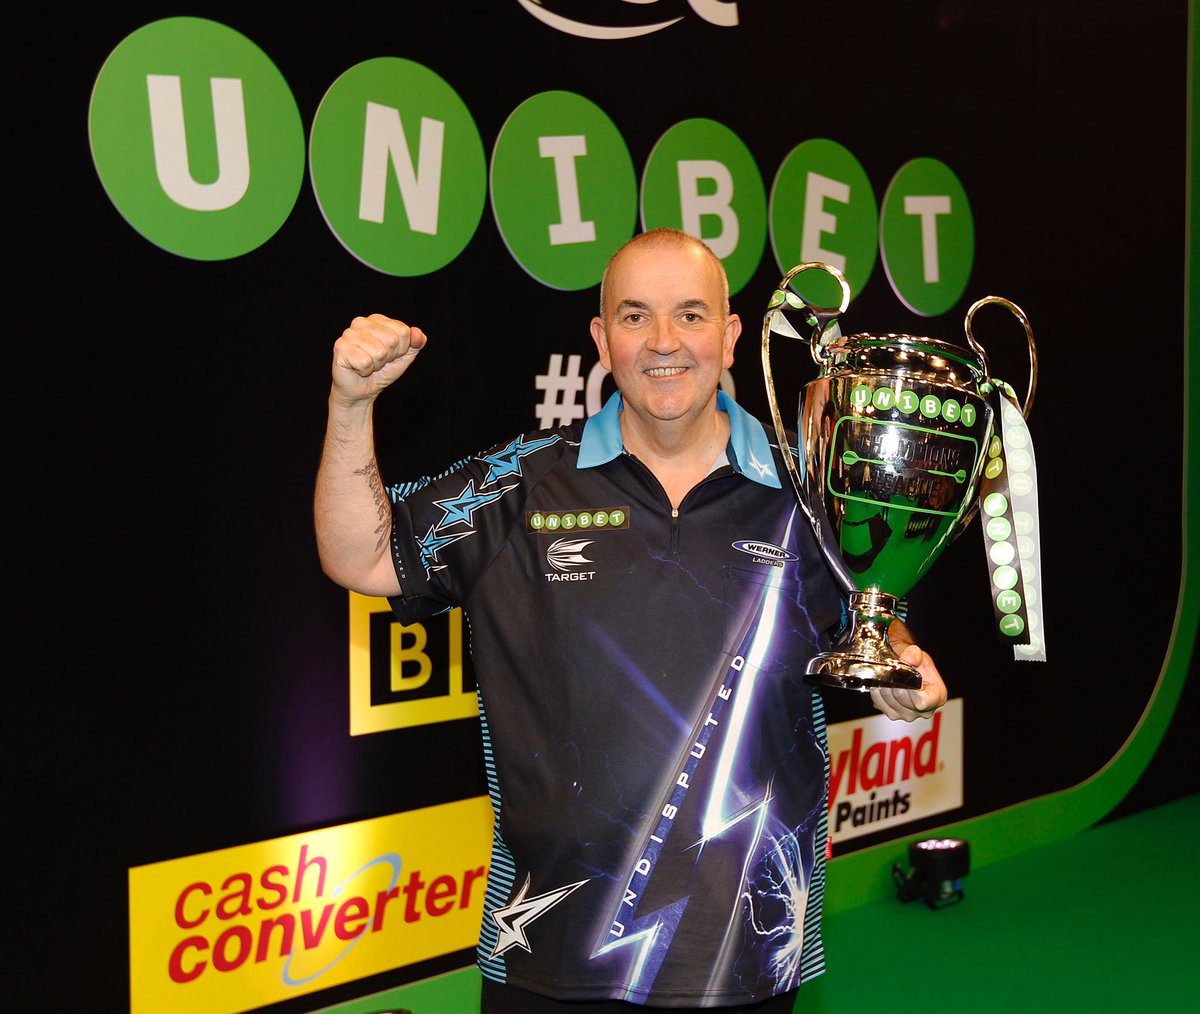 So happy to win the @unibet Champions League of Darts on the BBC. Thanks for all the support, it means so much! https://t.co/UFQatbCkSx